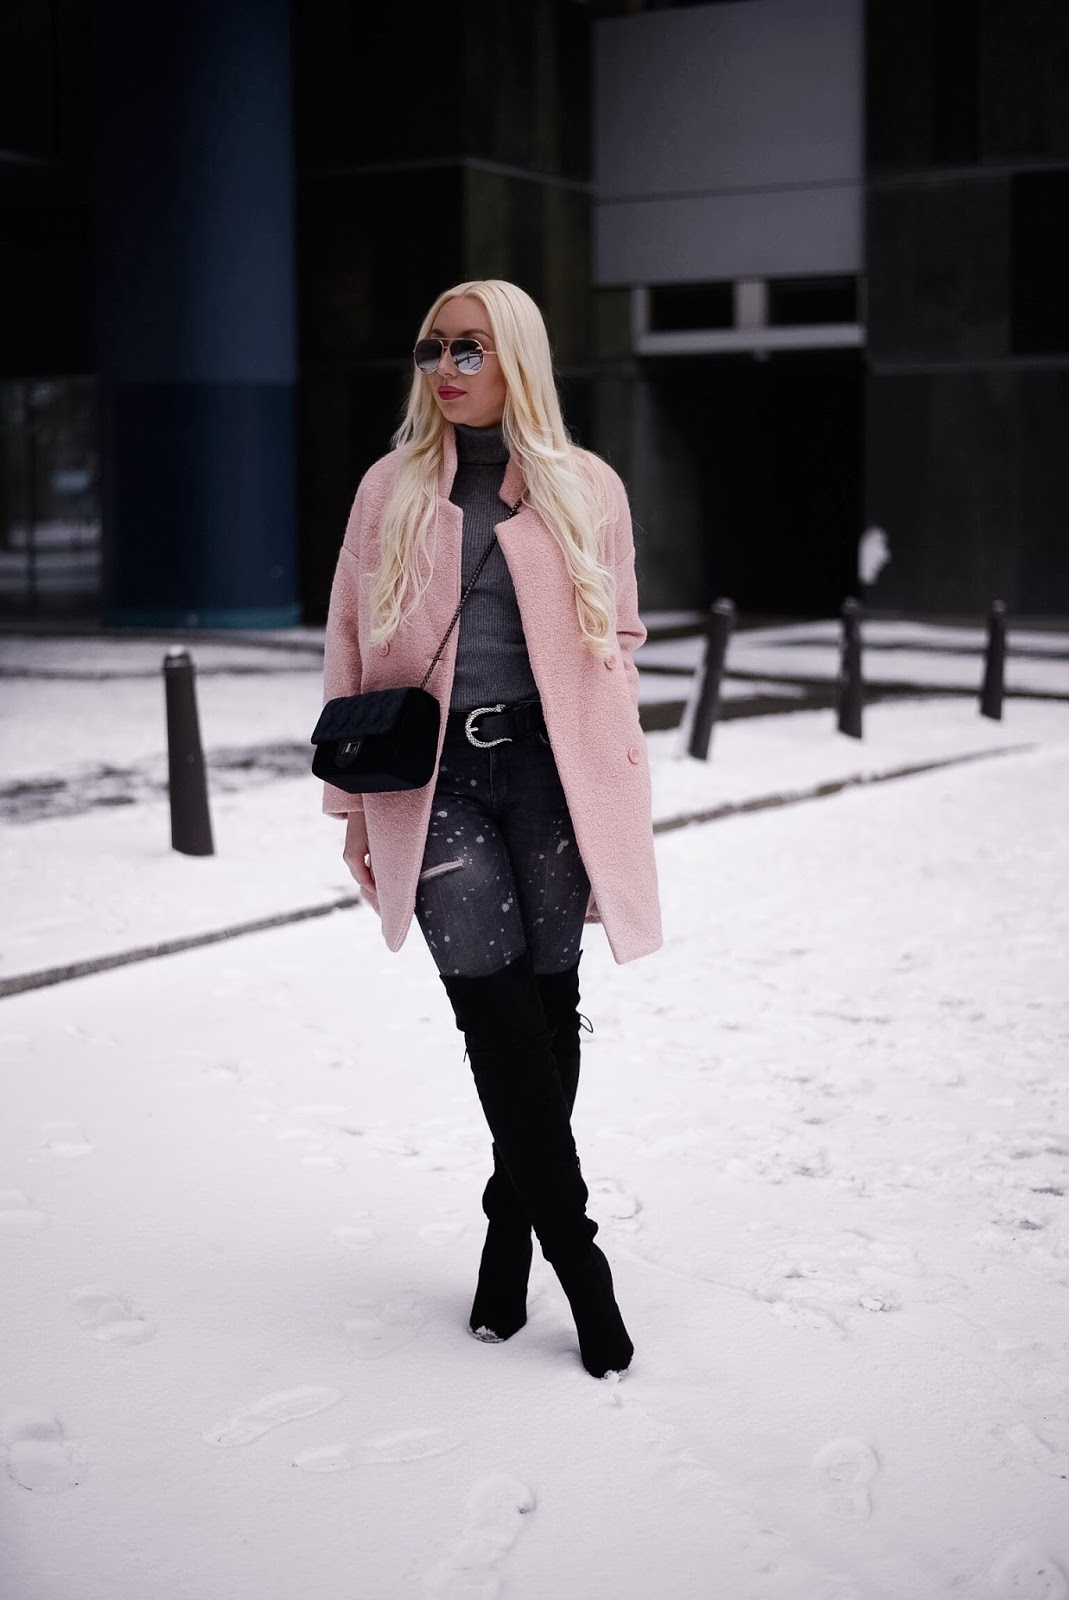 pink coat_winter outfit_what to wear for winter_winter streetstyle